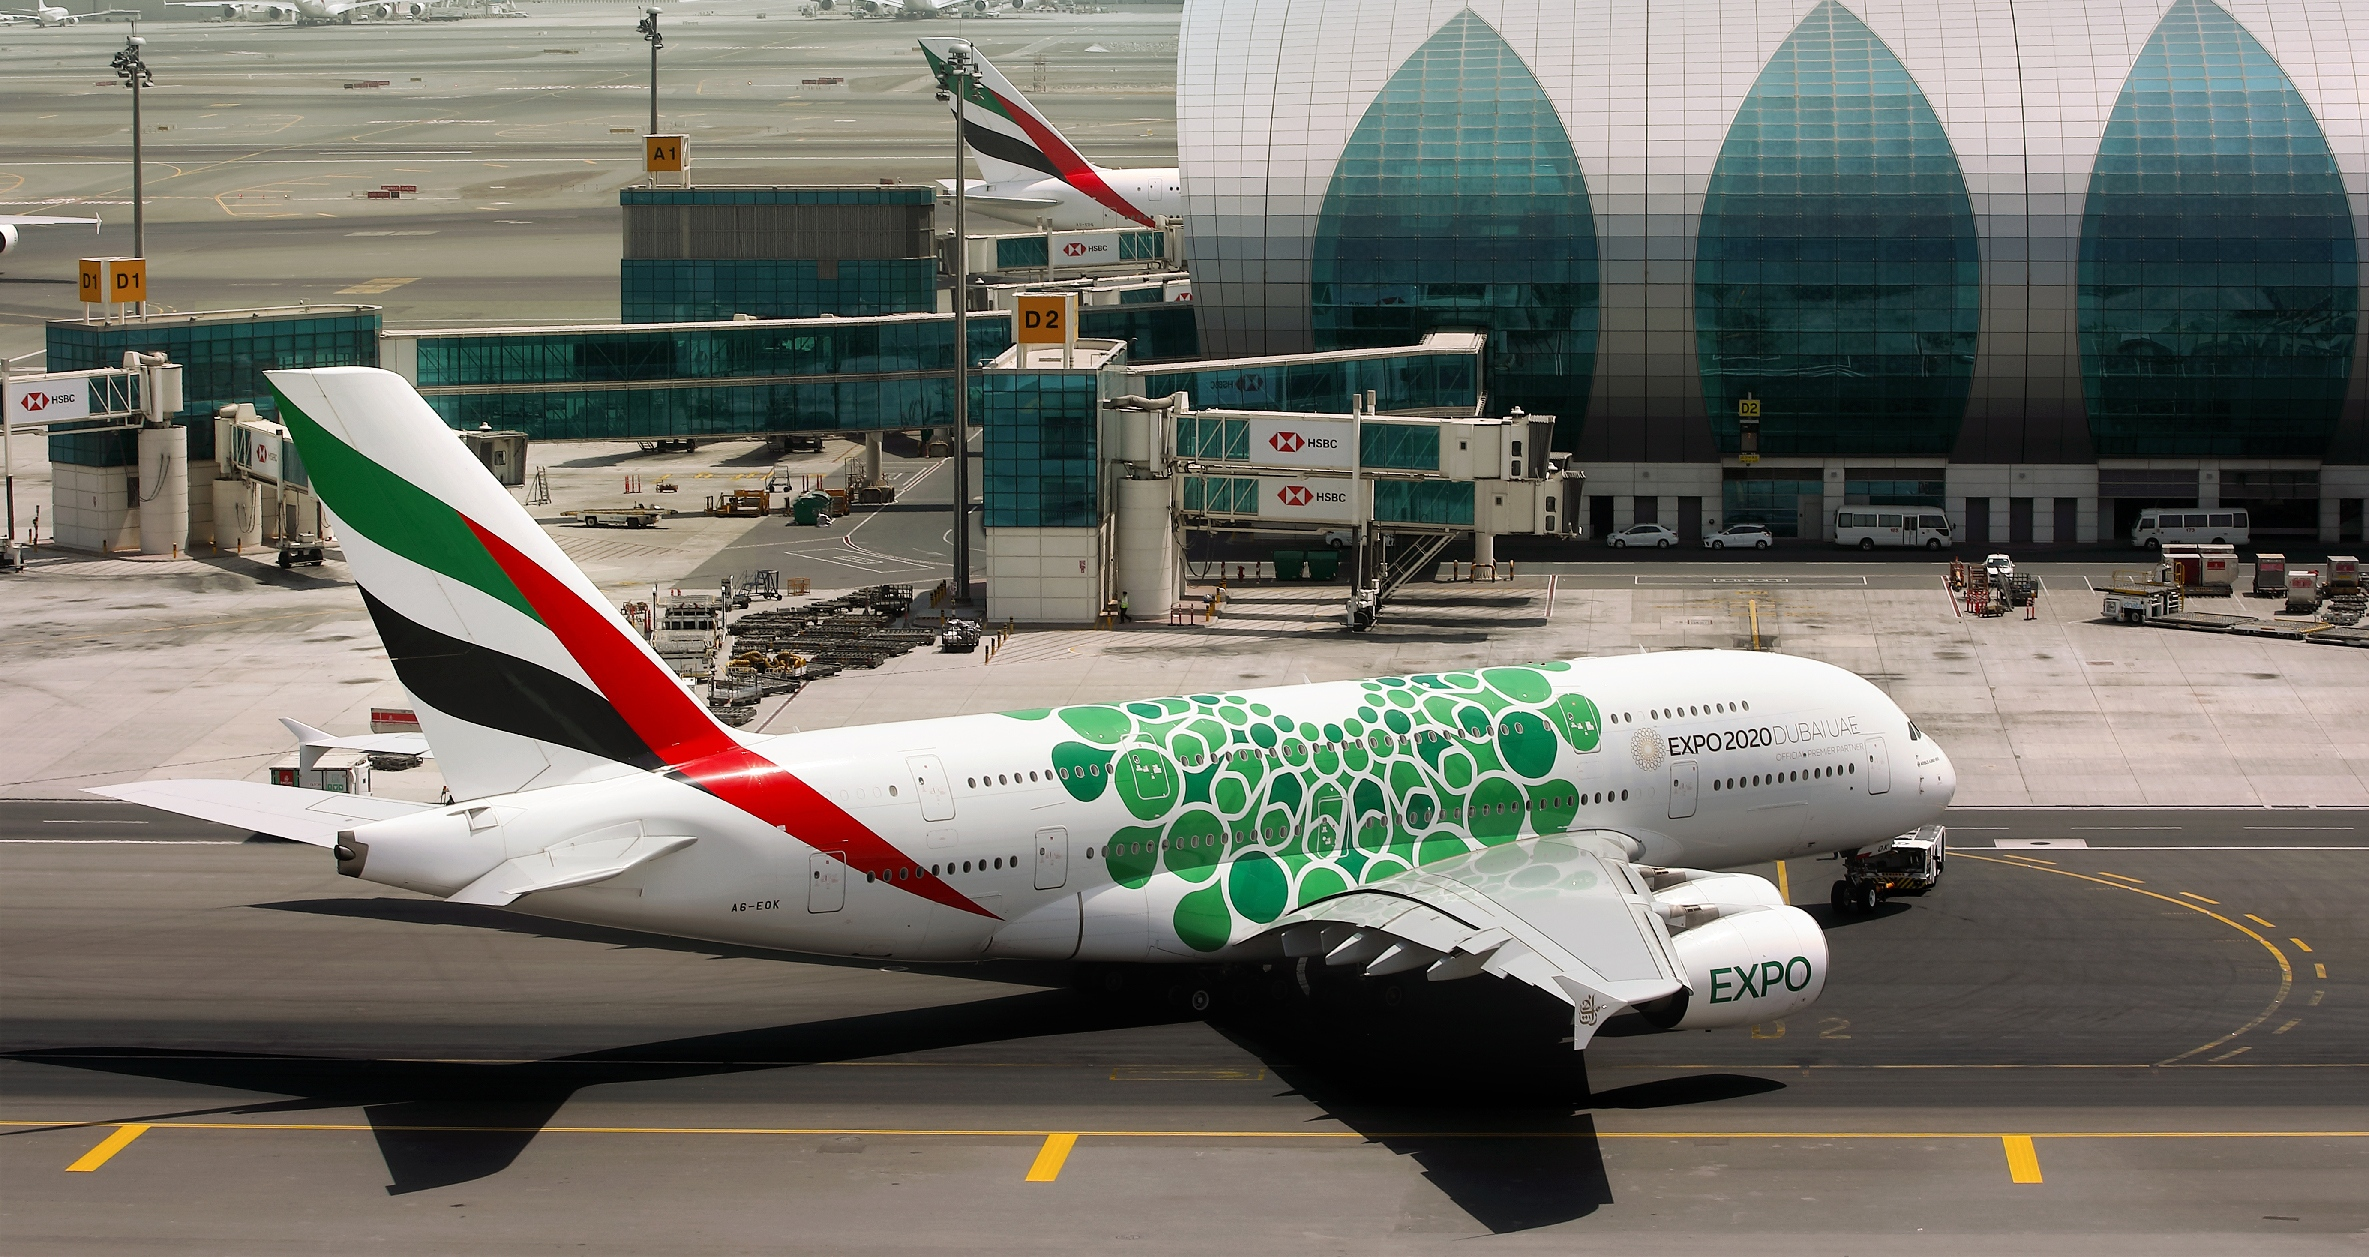 Sustainability A380